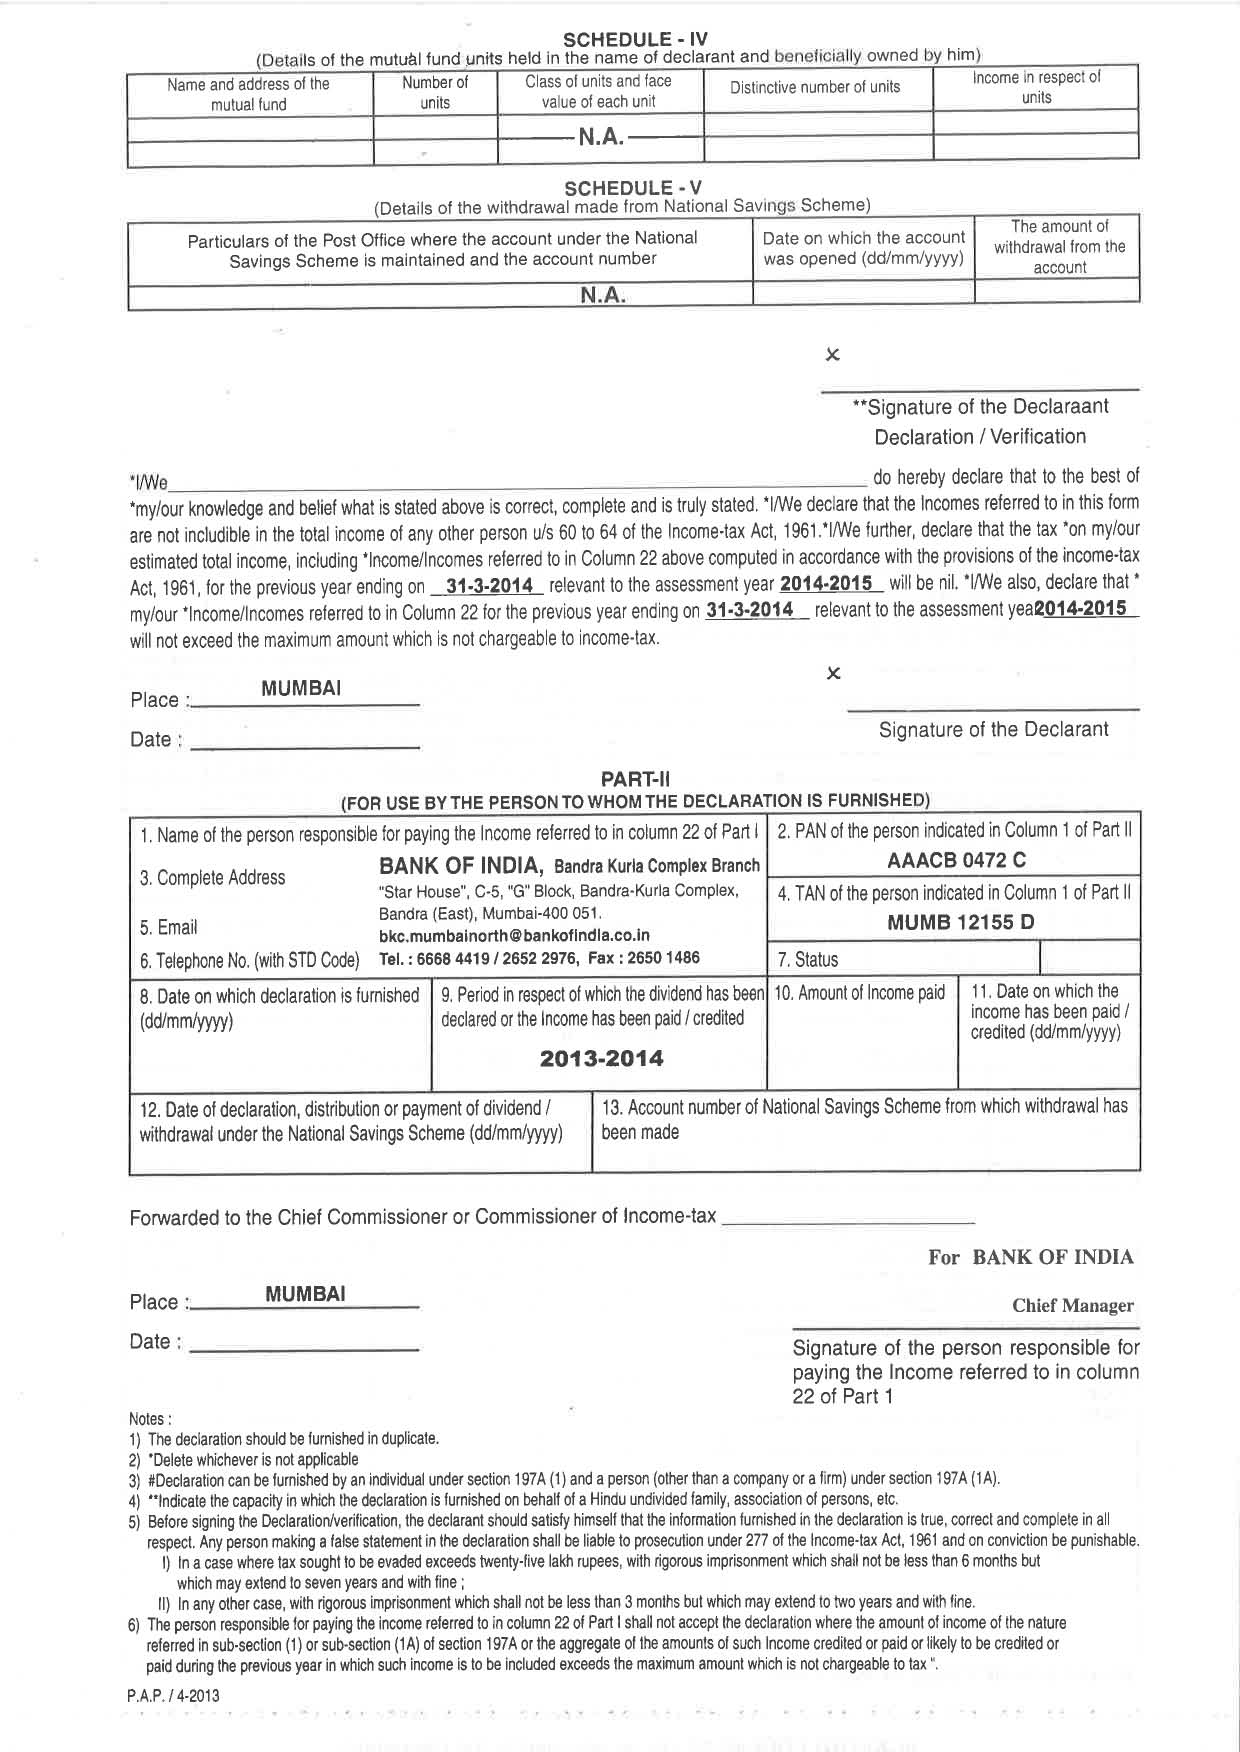 Bank of India Form 15g - 2017 2018 Student Forum